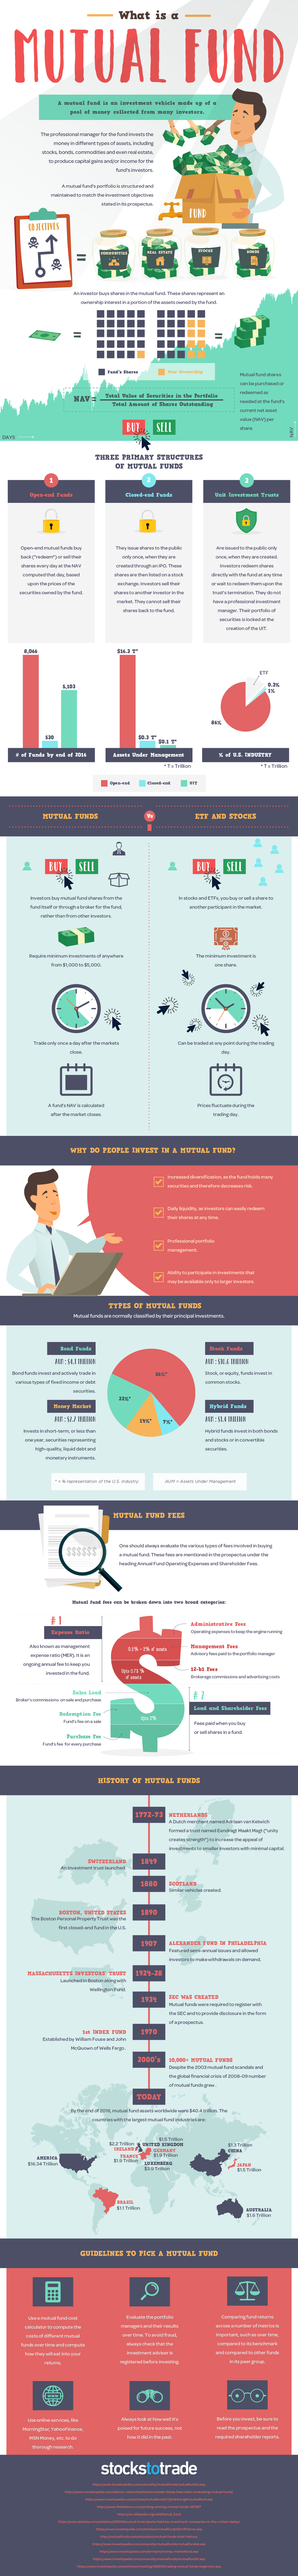 All About Mutual Funds: What, Why, When, Where - Infographic